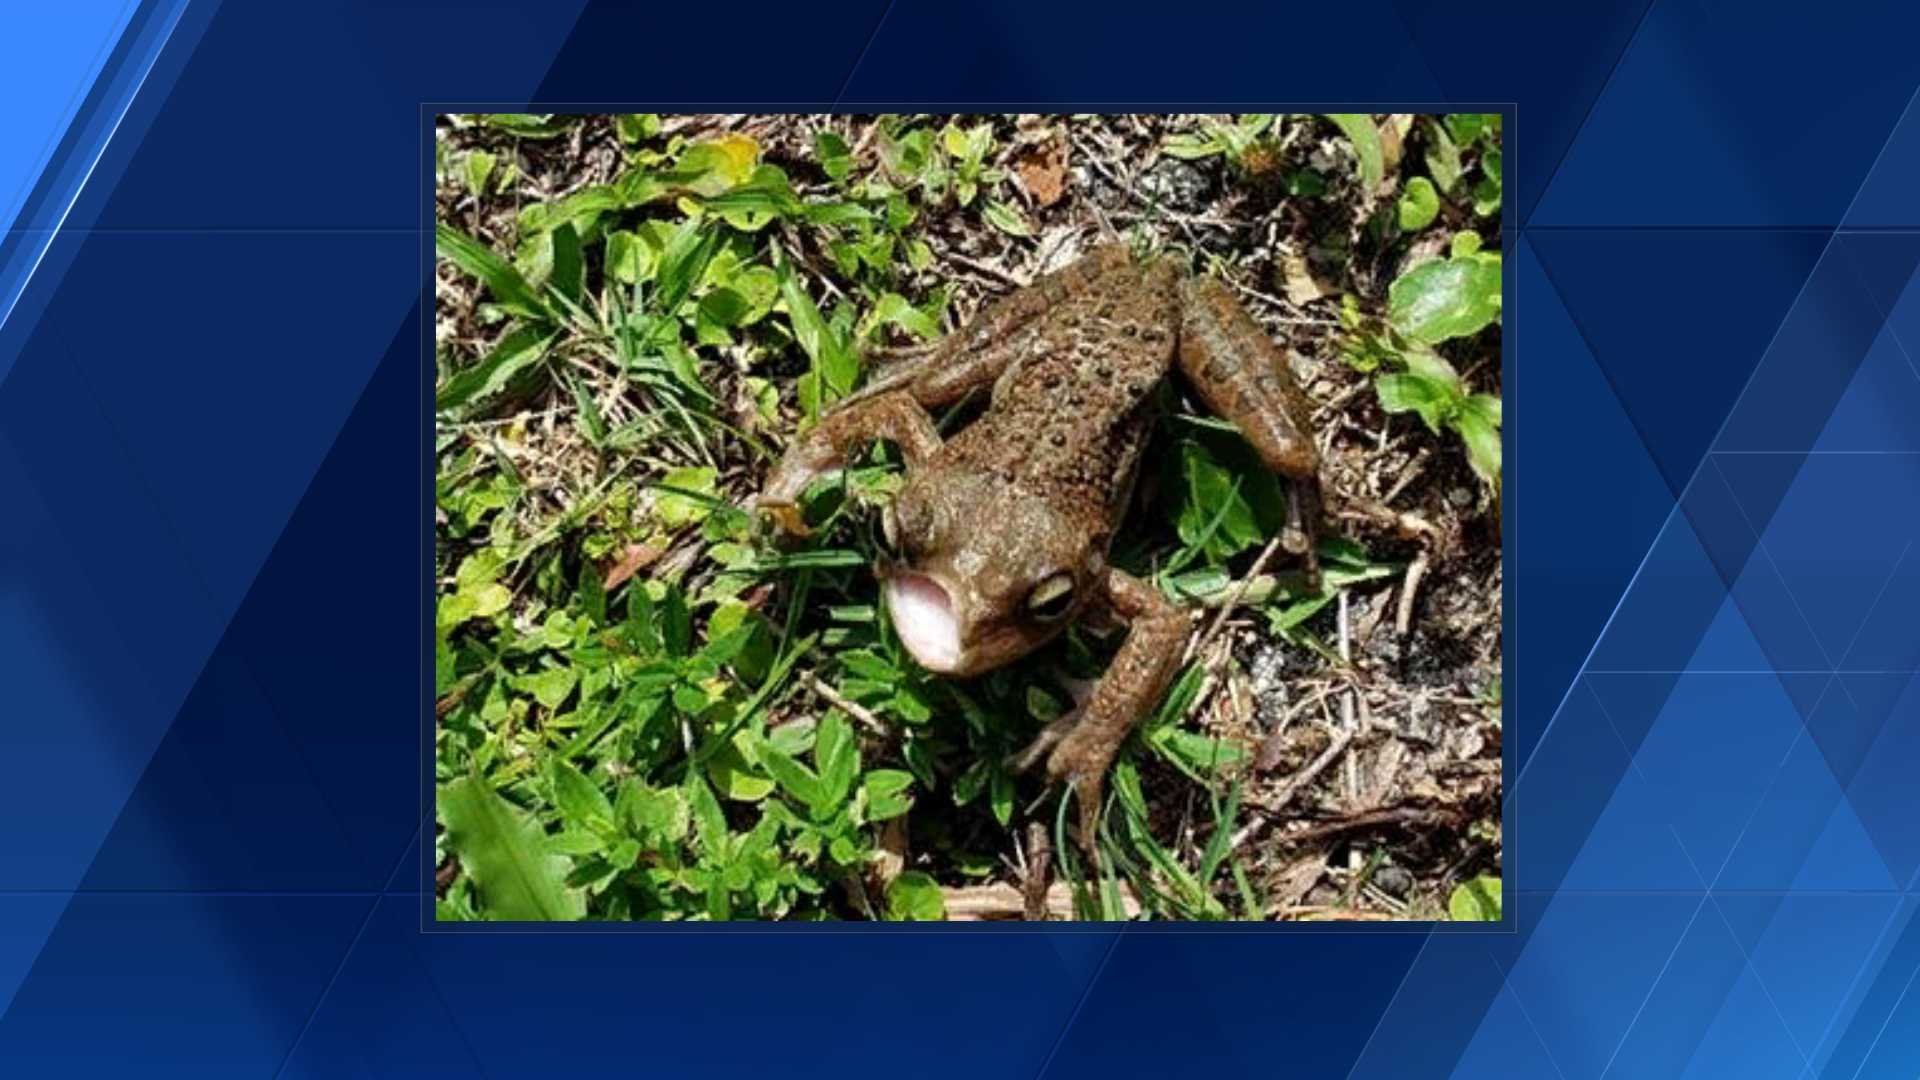 Half-faced amphibians found in Jupiter Farms: possible mutation